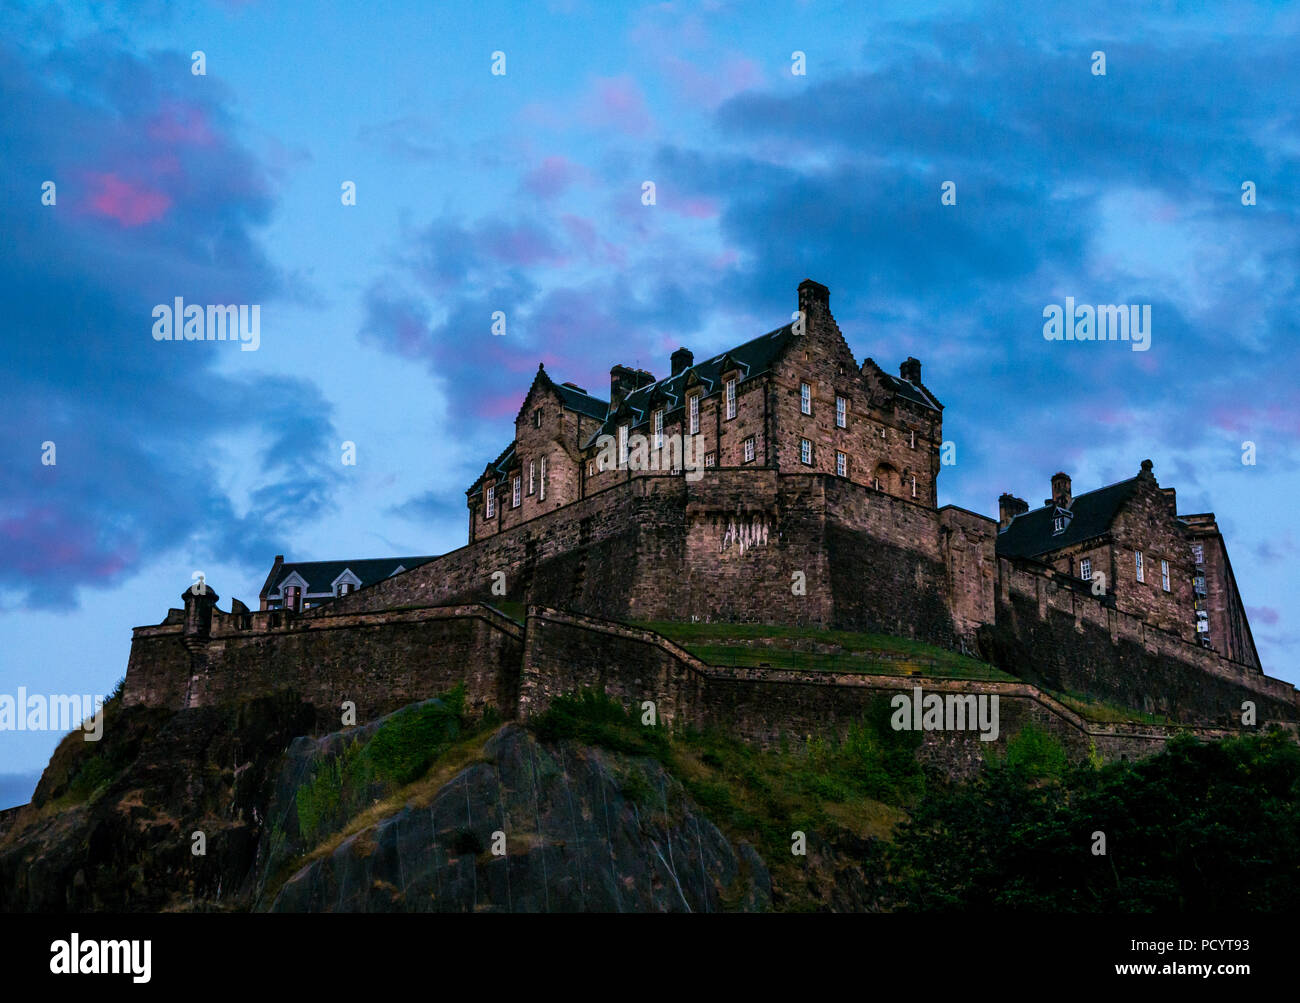 Edinburgh Castle rock at dusk sunset with dark blue sky and pink clouds, Edinburgh, Scotland, UK - Stock Image